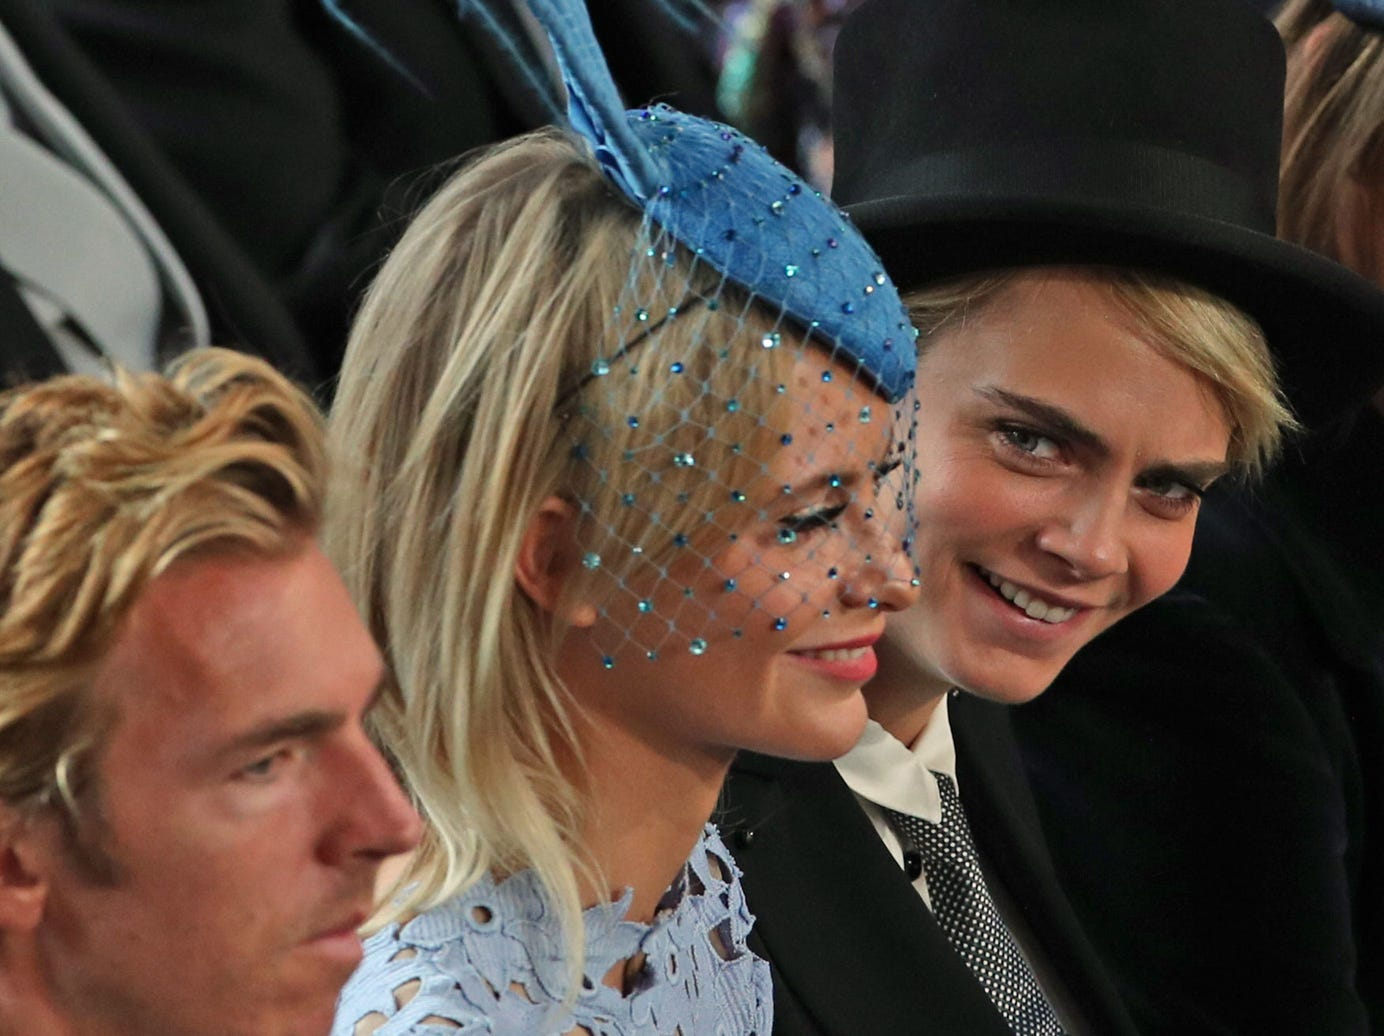 Poppy Delevinge center, and Cara Delevingne react during the wedding ceremony of Britain's Princess Eugenie of York.